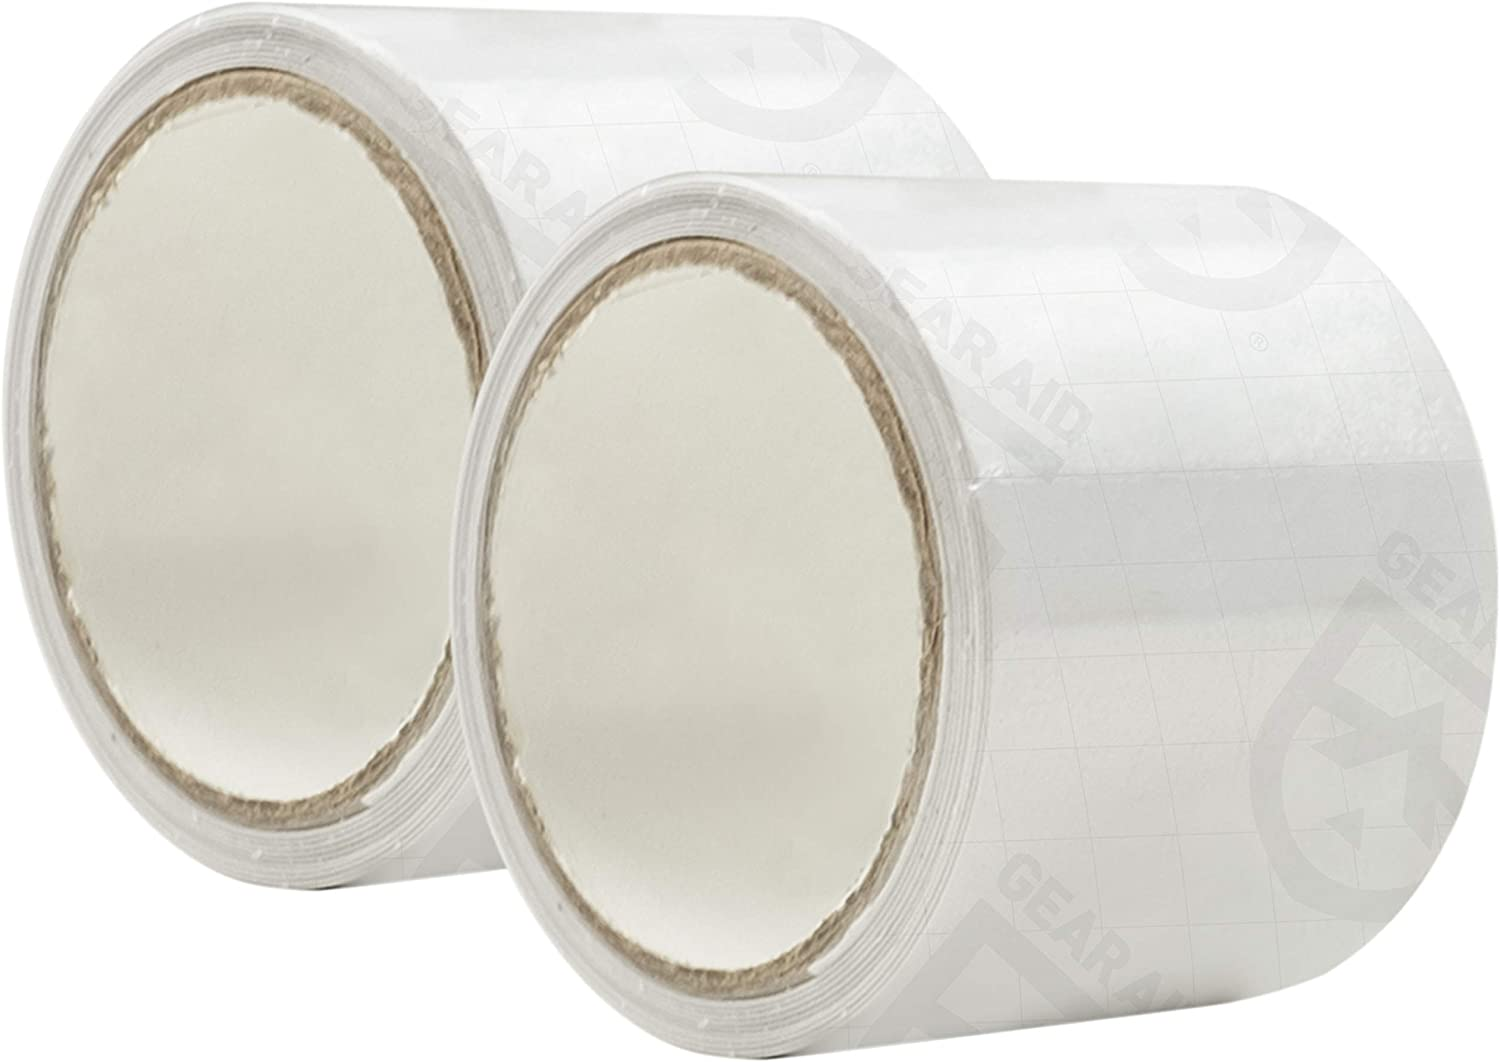 Gear Aid Tenacious Tape Repair and Seam Tape for Tents and Vinyl, Clear Roll, 1.5